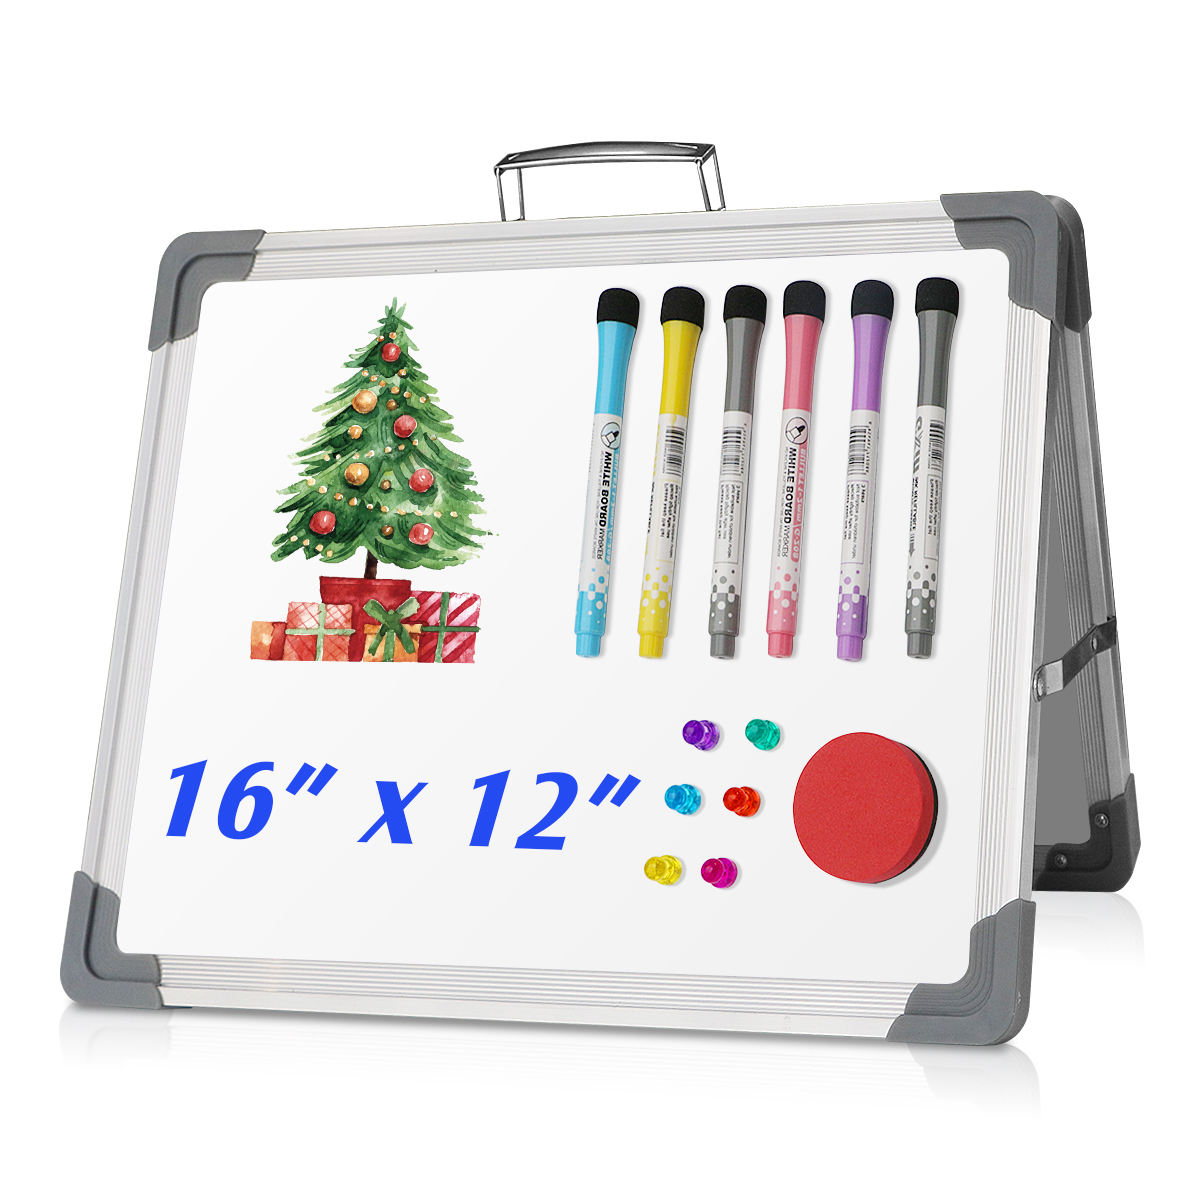 360 Degree Desktop Portable Mini Small Dry Erase Board Whiteboard for Kids Office Home School Double Side Magnetic White board